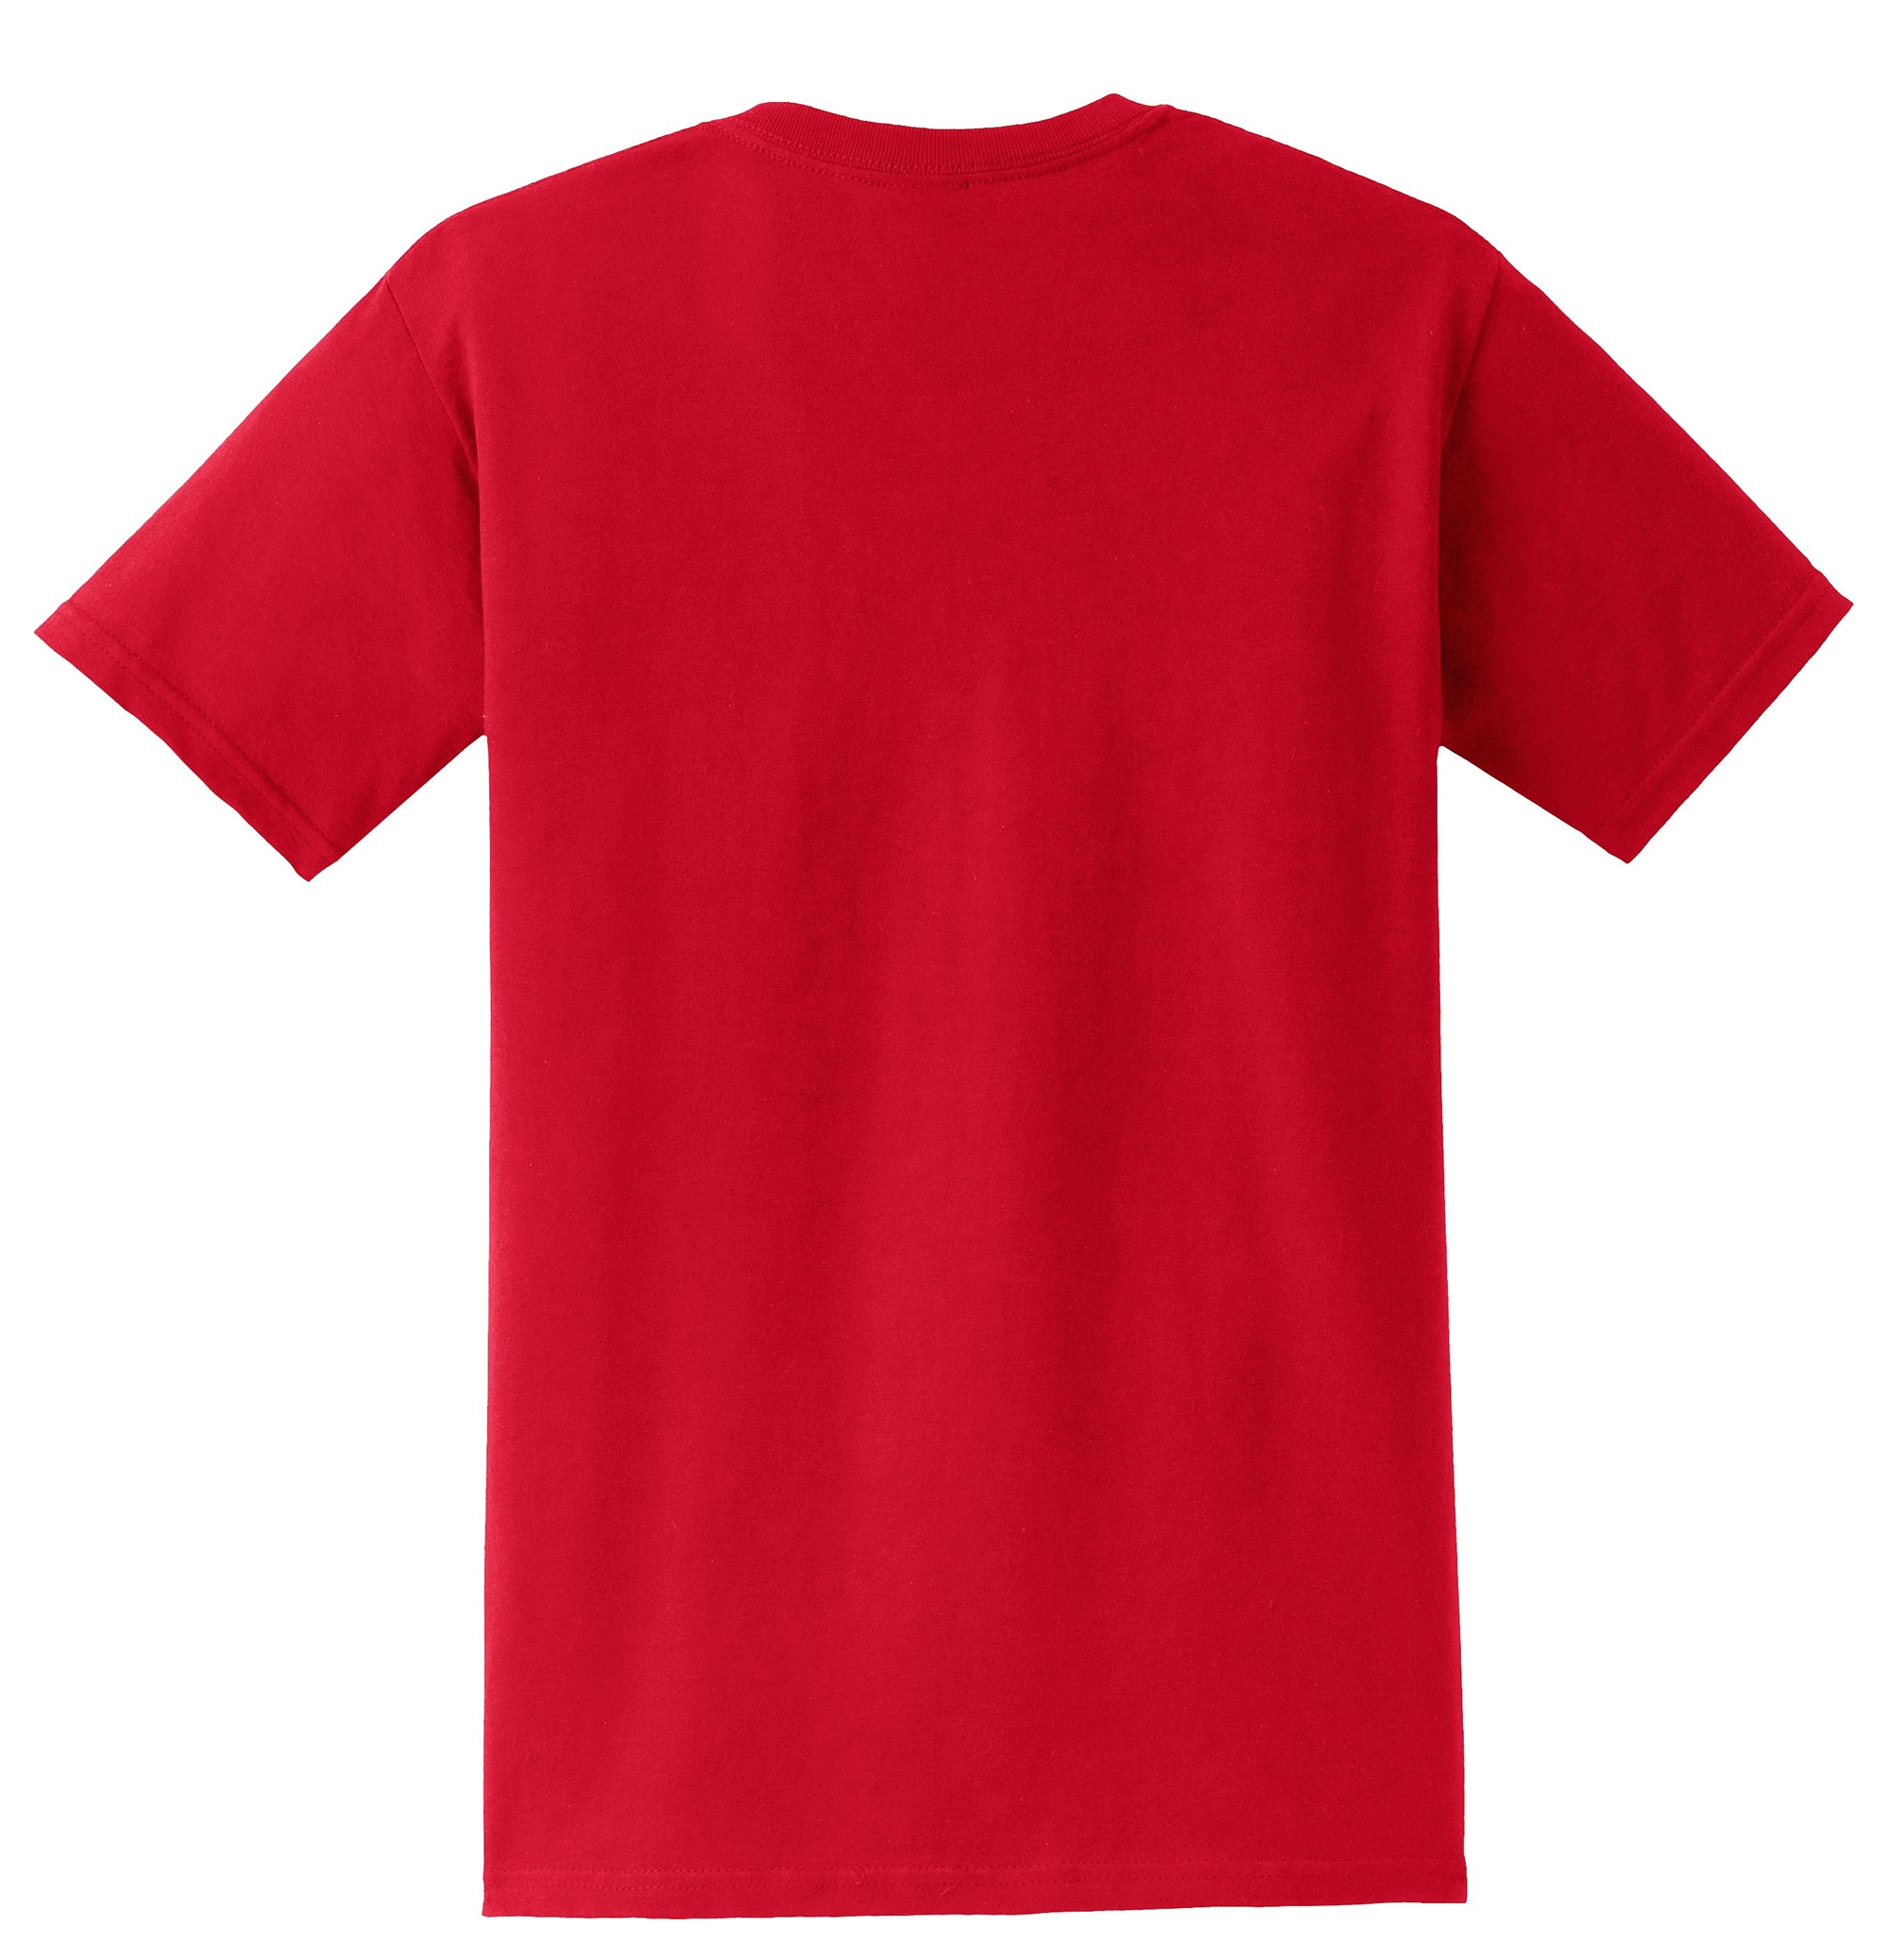 Gildan 8300 dryblend 50 cotton 50 poly pocket t shirts for Gildan brand t shirt size chart